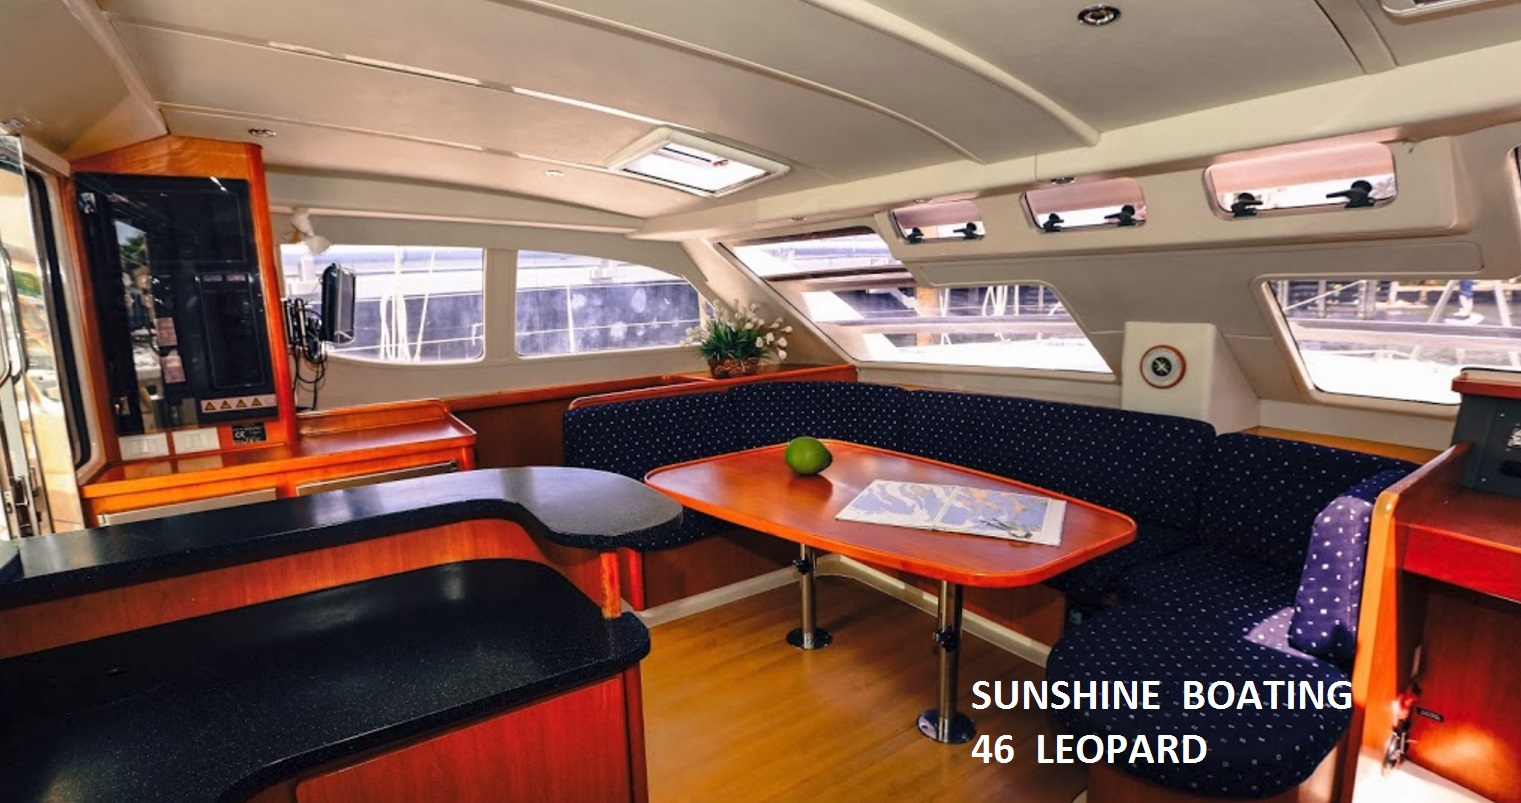 sunshine-boating-leopard-46-fll-f